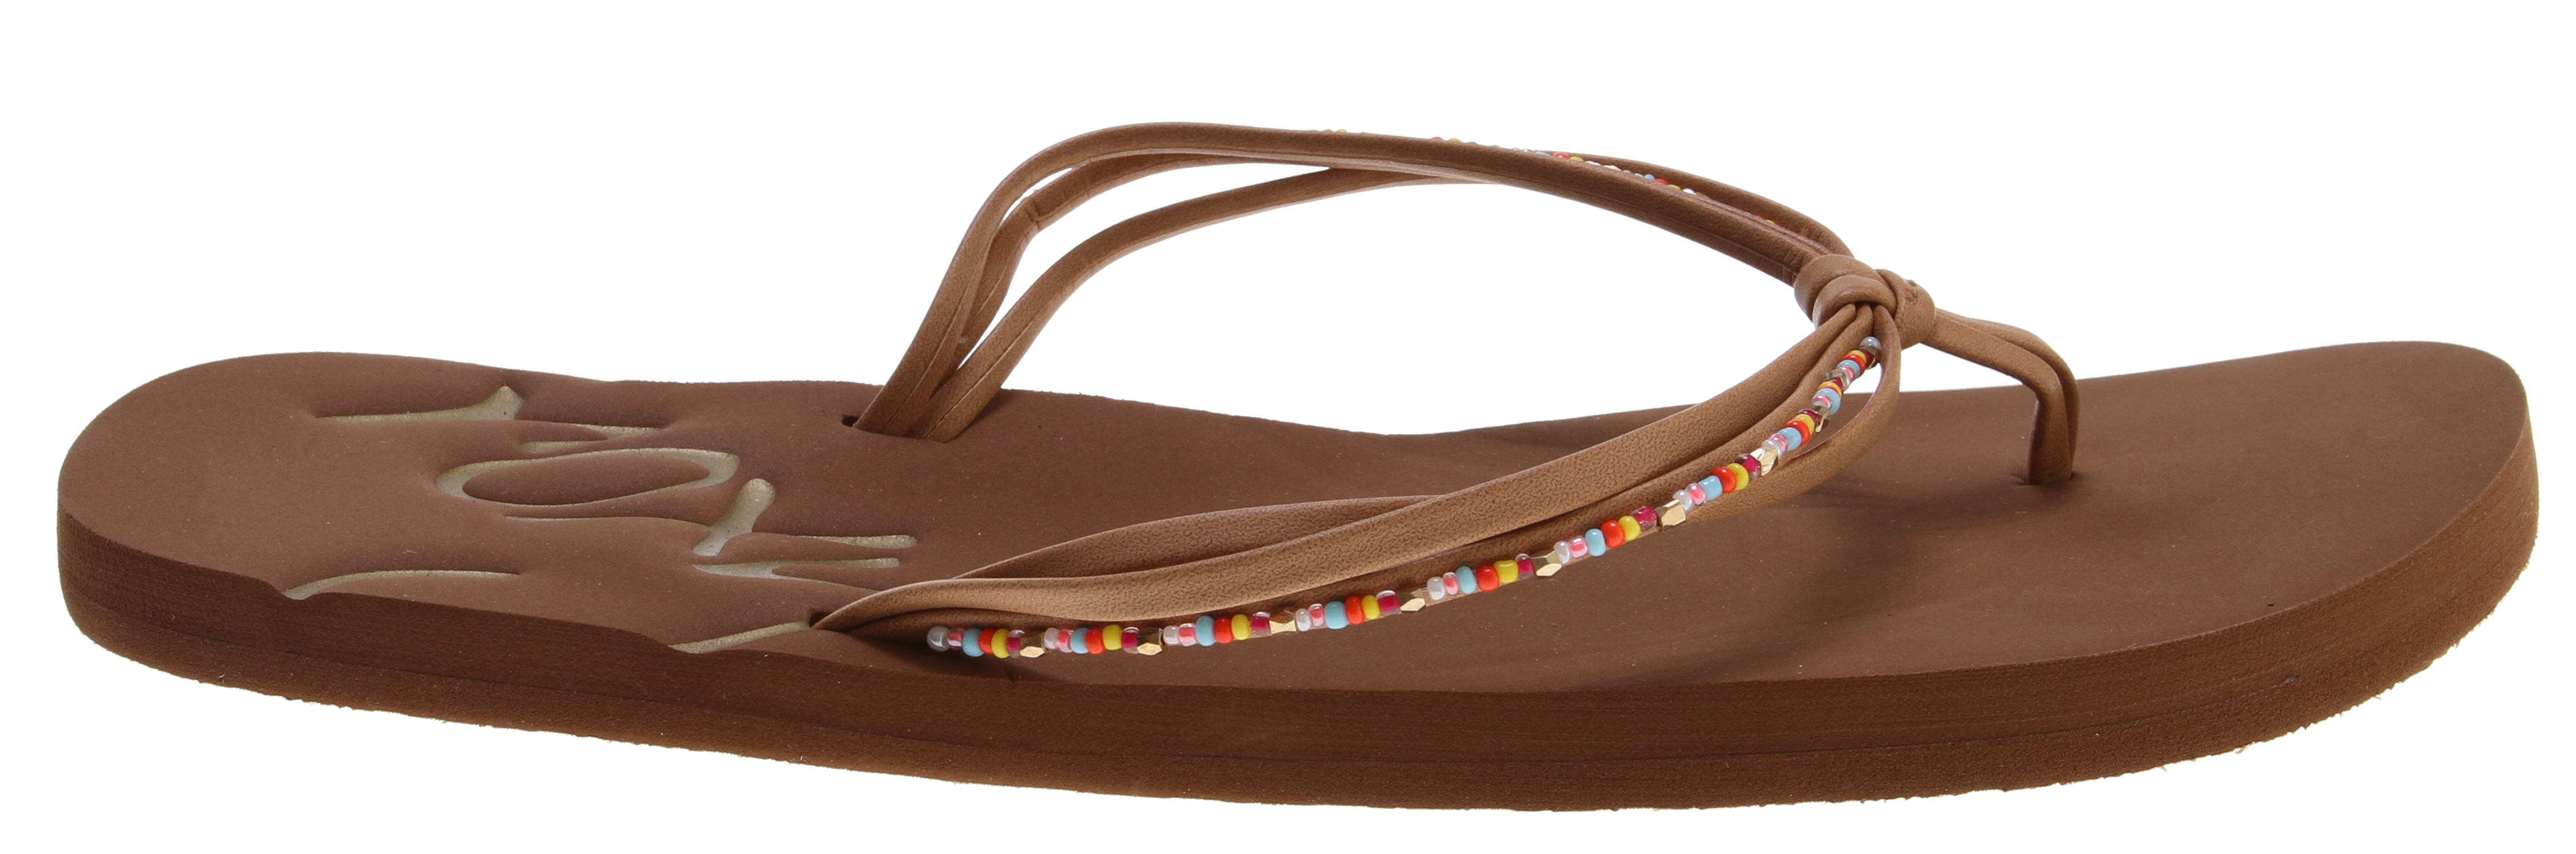 Surf Key Features of the Roxy Cabo Sandals: Beaded, soft pu upper Metallic pu lining Soft EVA footbed with ROXY script embossed logo - $17.95